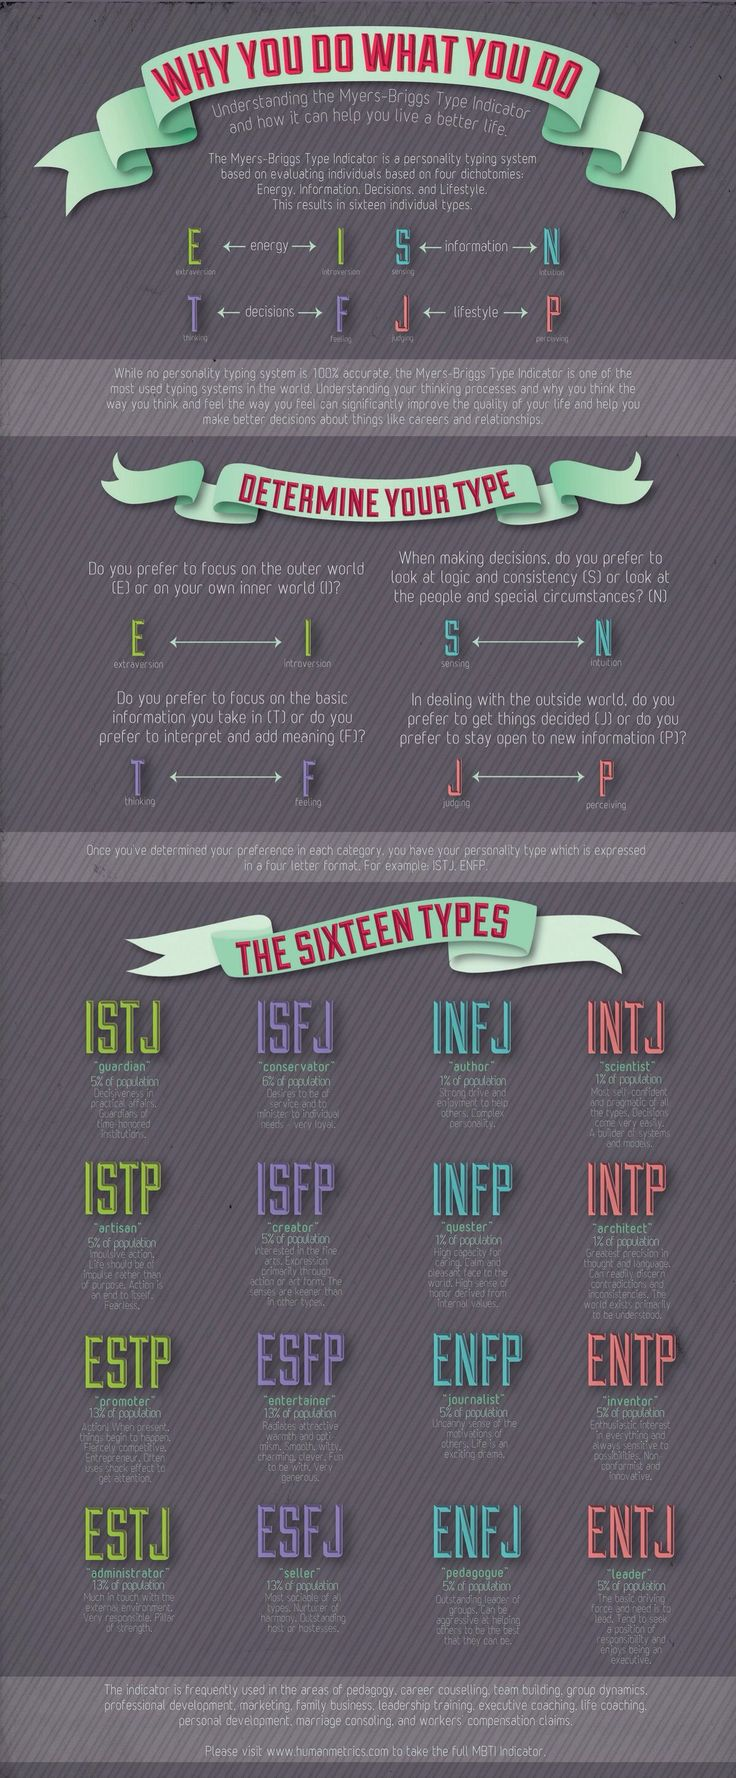 113 best images about myers briggs personality types on pinterest disney personality types. Black Bedroom Furniture Sets. Home Design Ideas